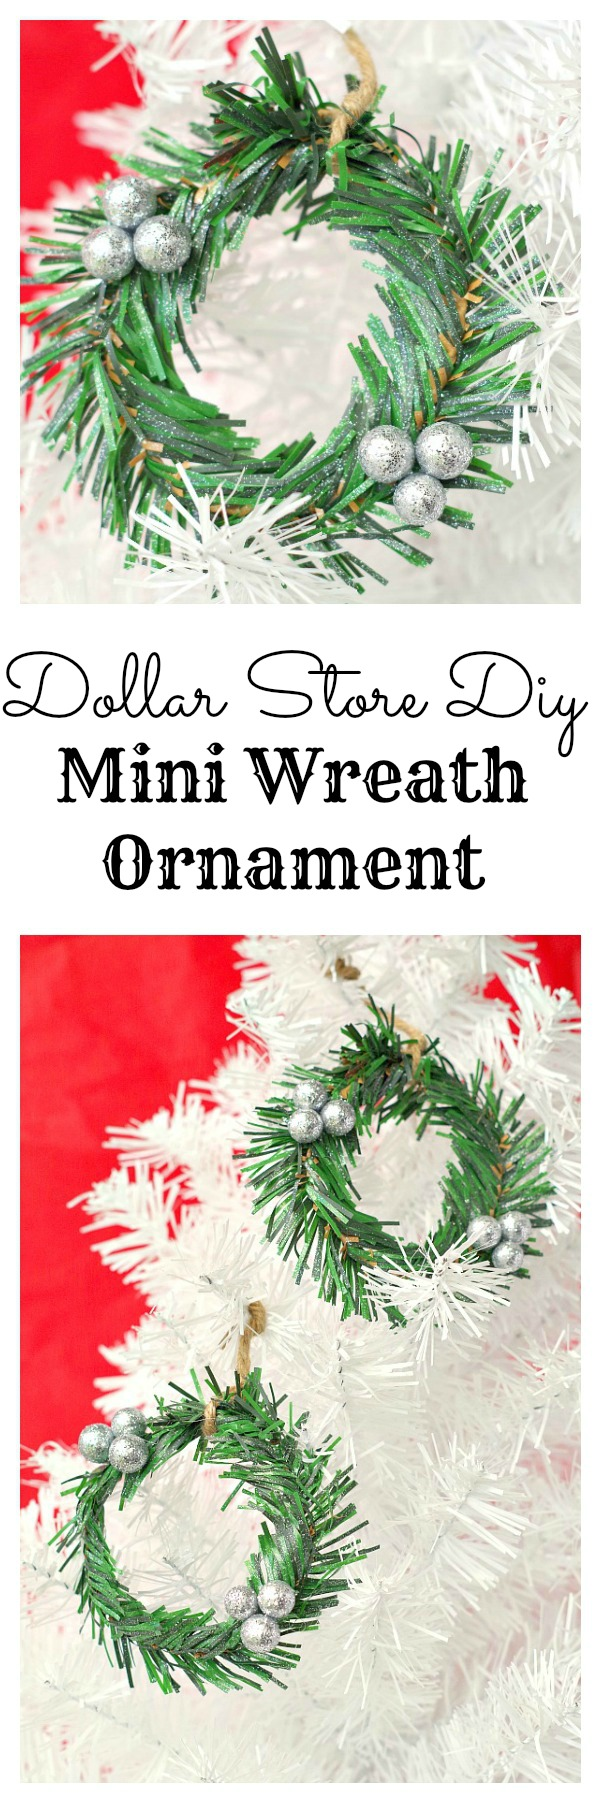 DIY Mini Wreath Ornmanet